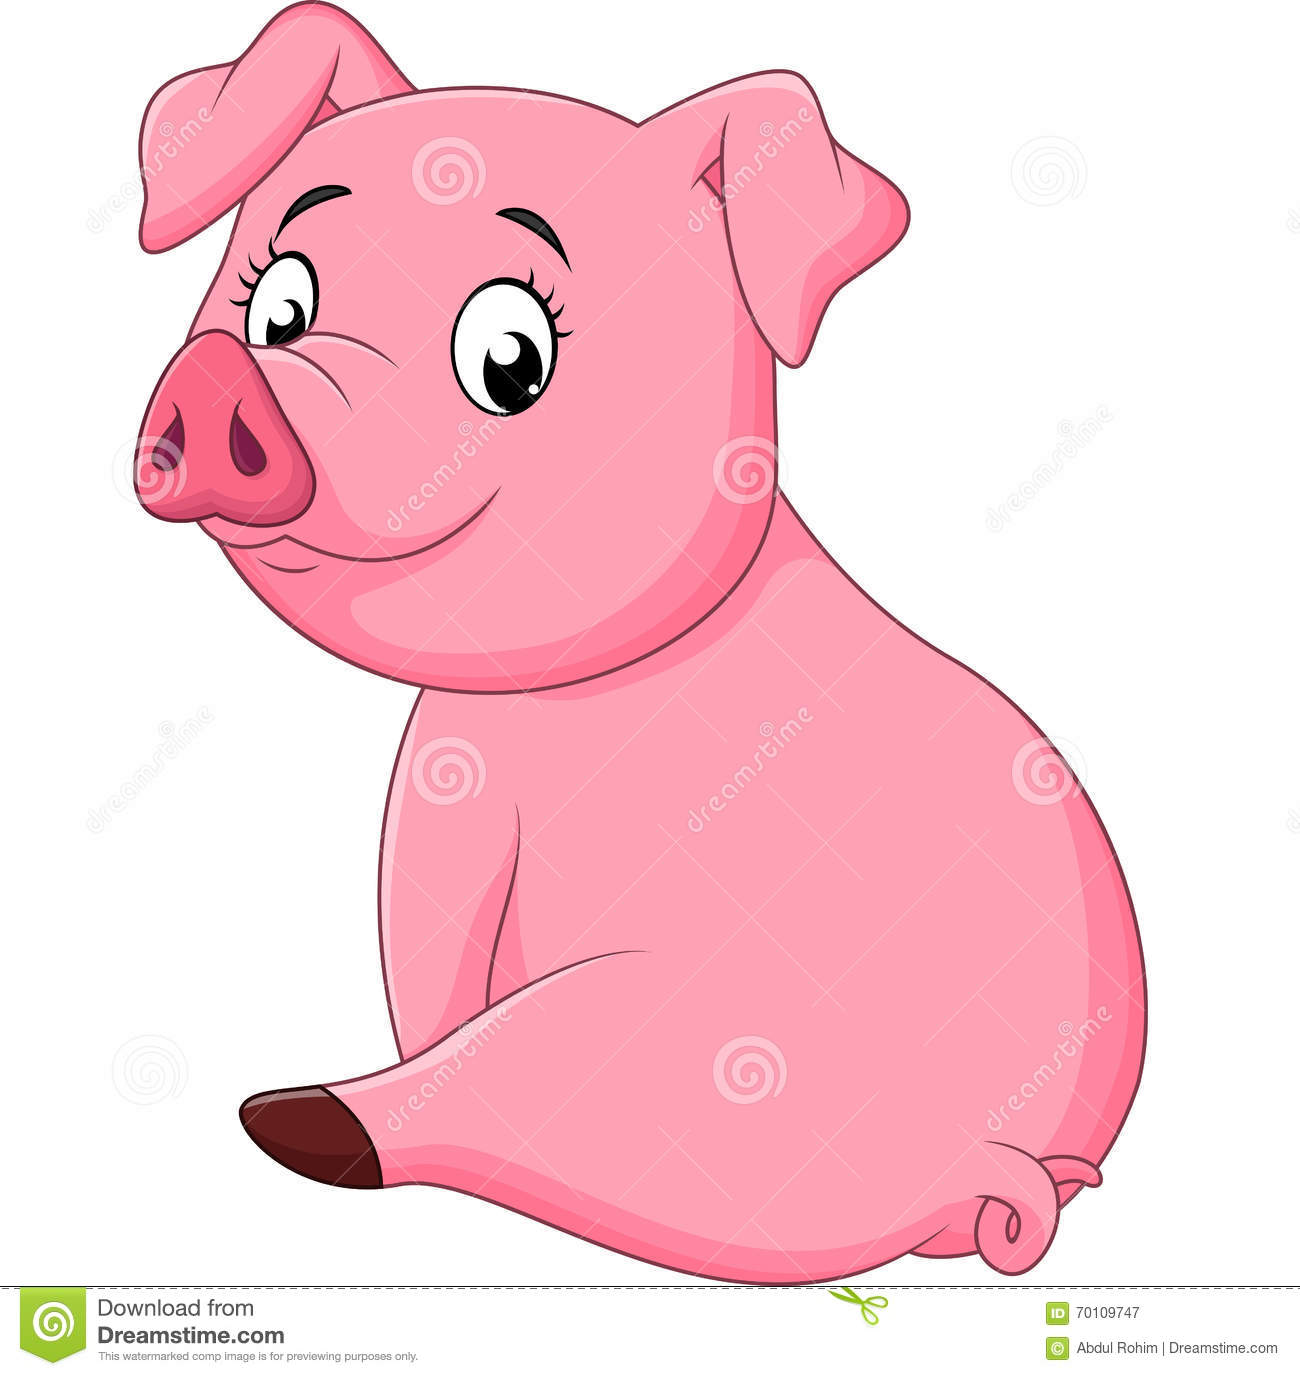 how to draw an adorable pig